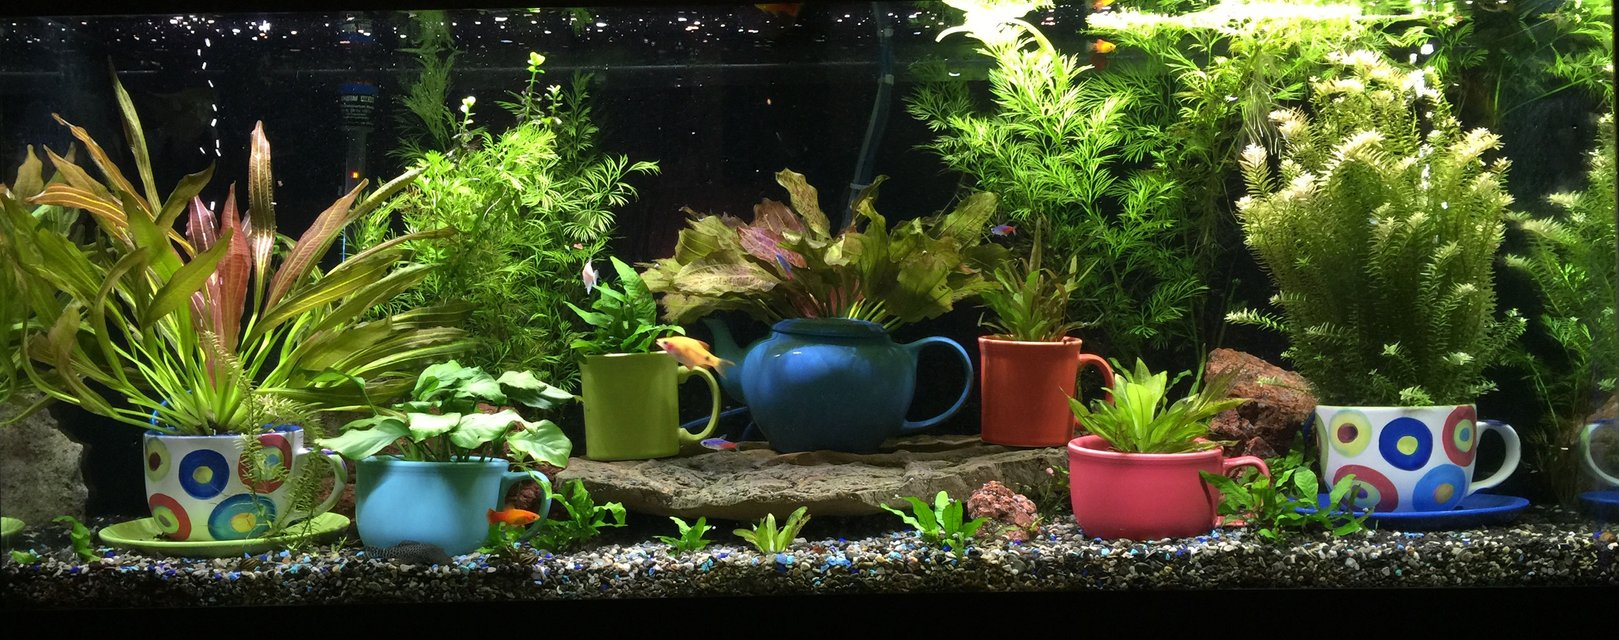 Rated #5: 72 Gallons Planted Tank - This is my 75-gallon freshwater planted aquarium. Located in my living room, on display next to my mug collection. It's been running for 8 months or so. Enjoy and thank you!